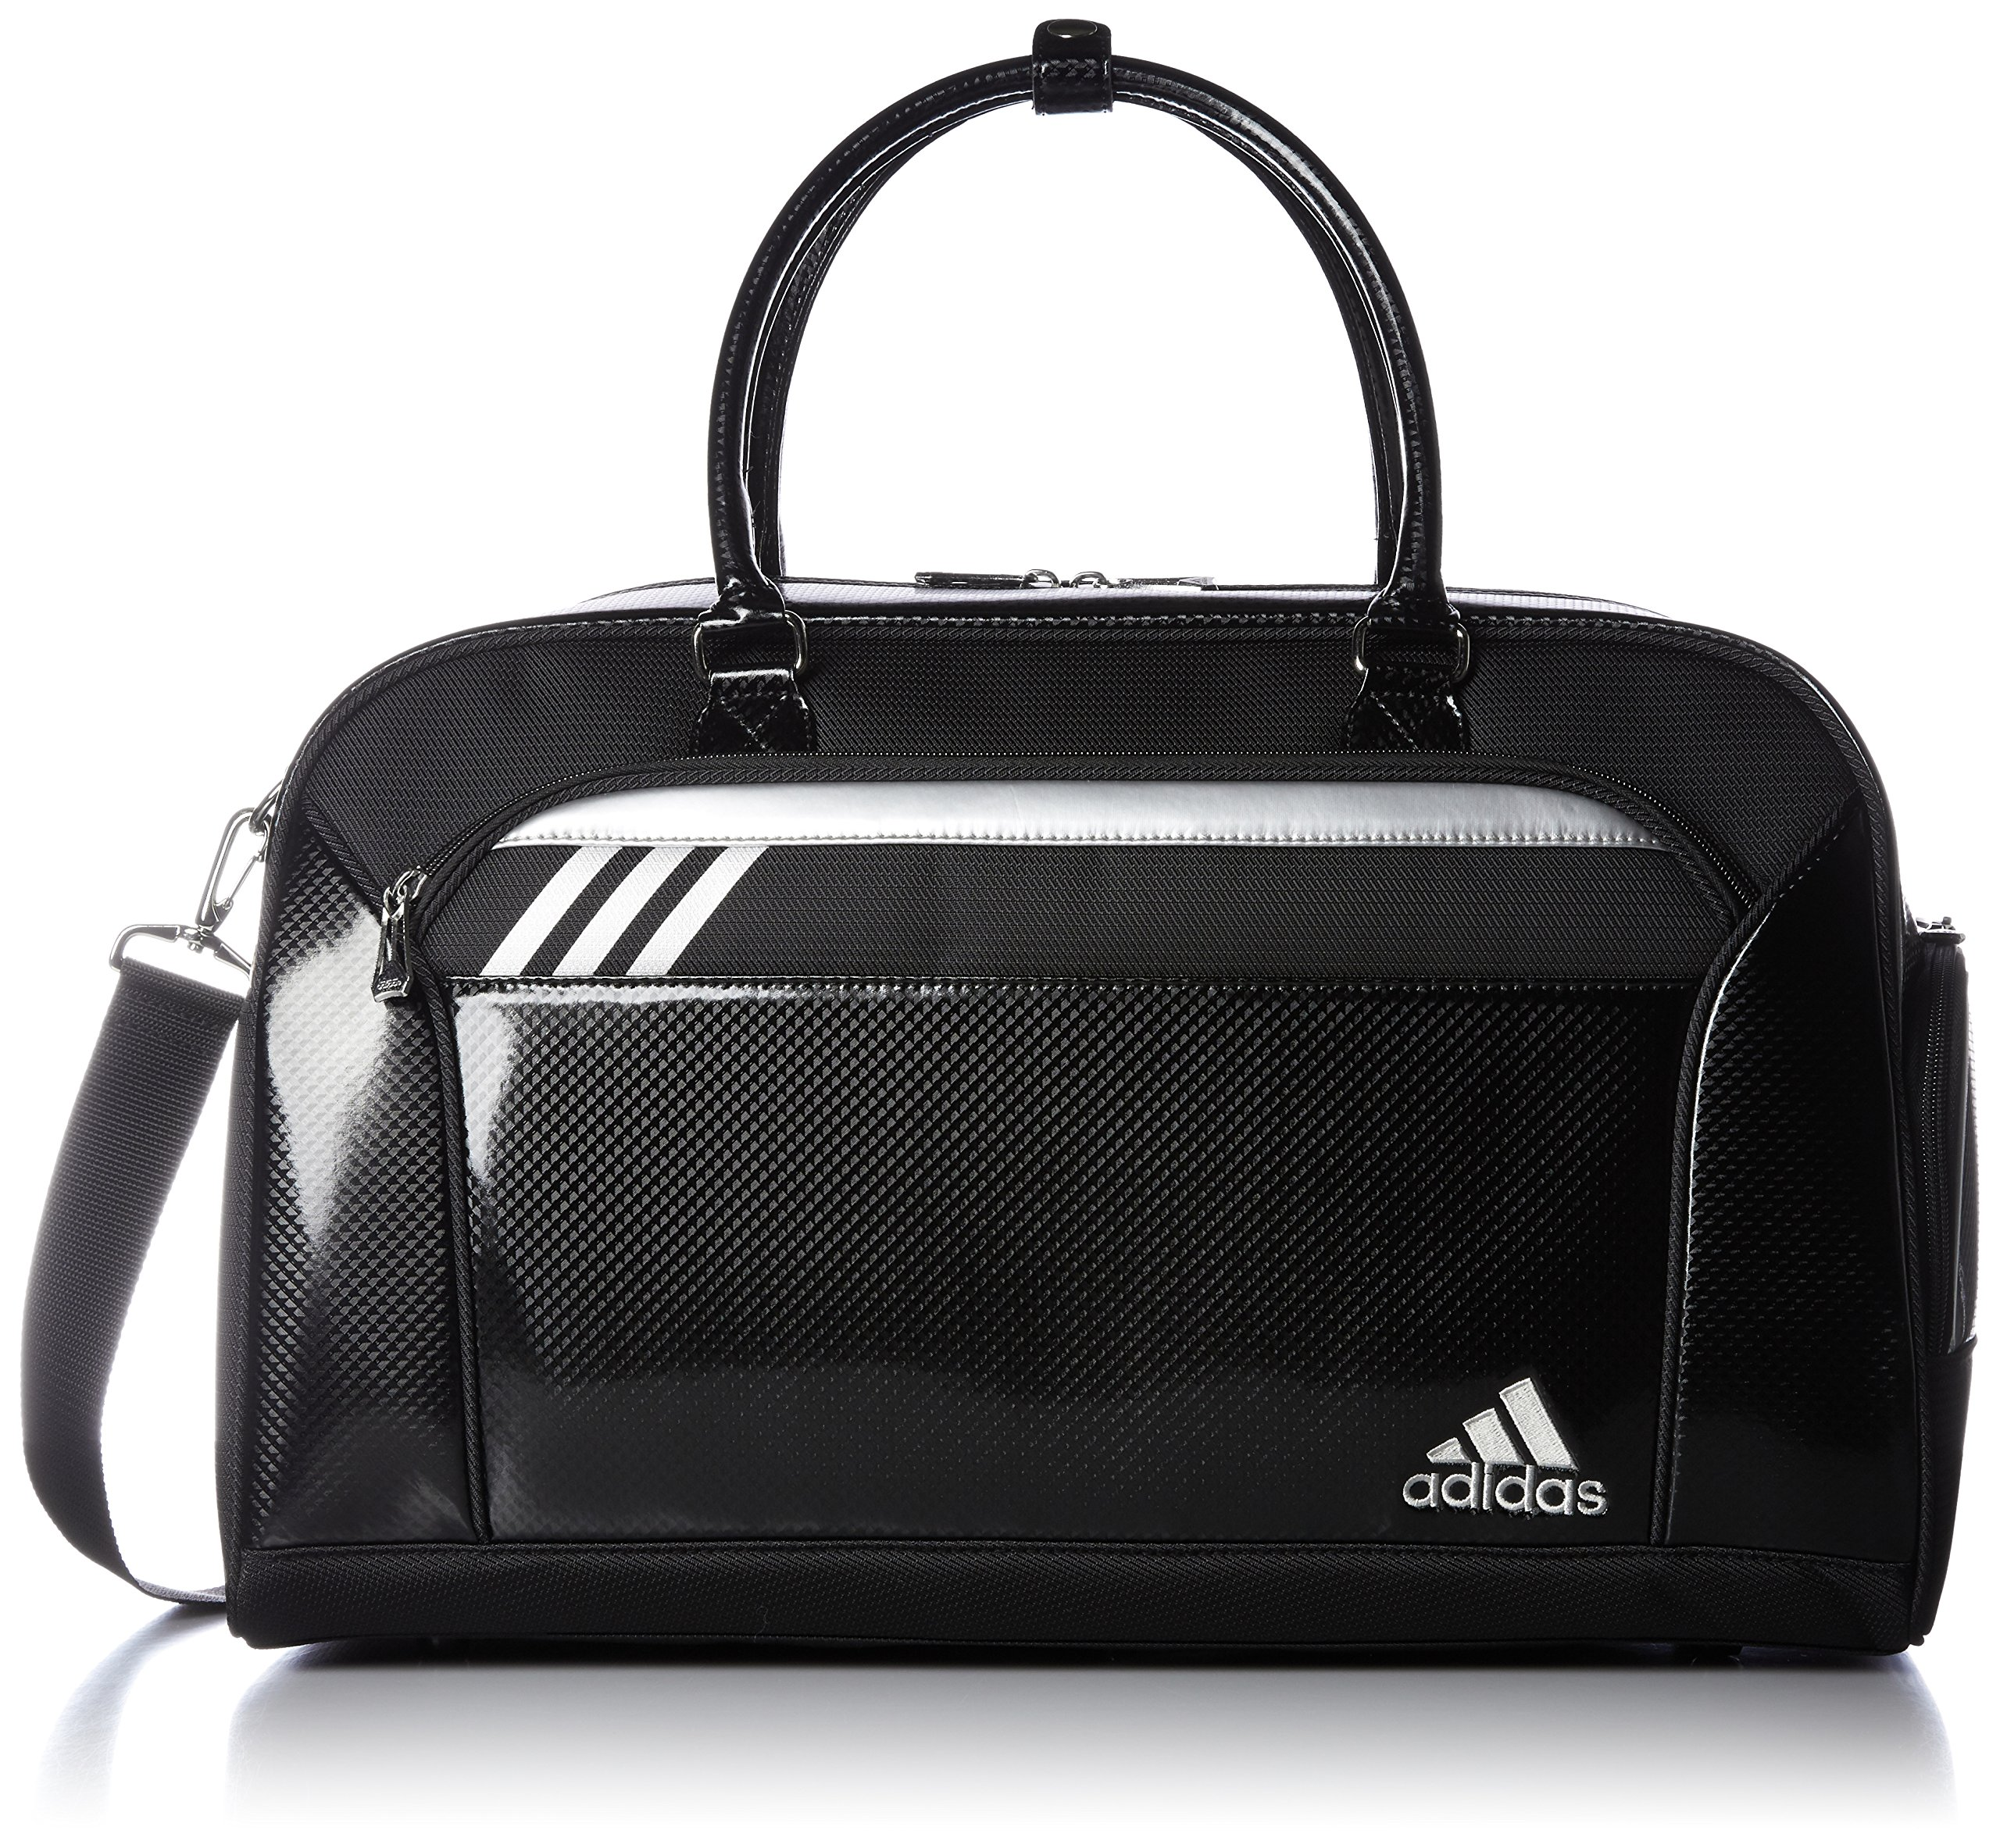 [Adidas Golf] Boston Bag 2 Deodorant Name AWR 87 A10213 Black